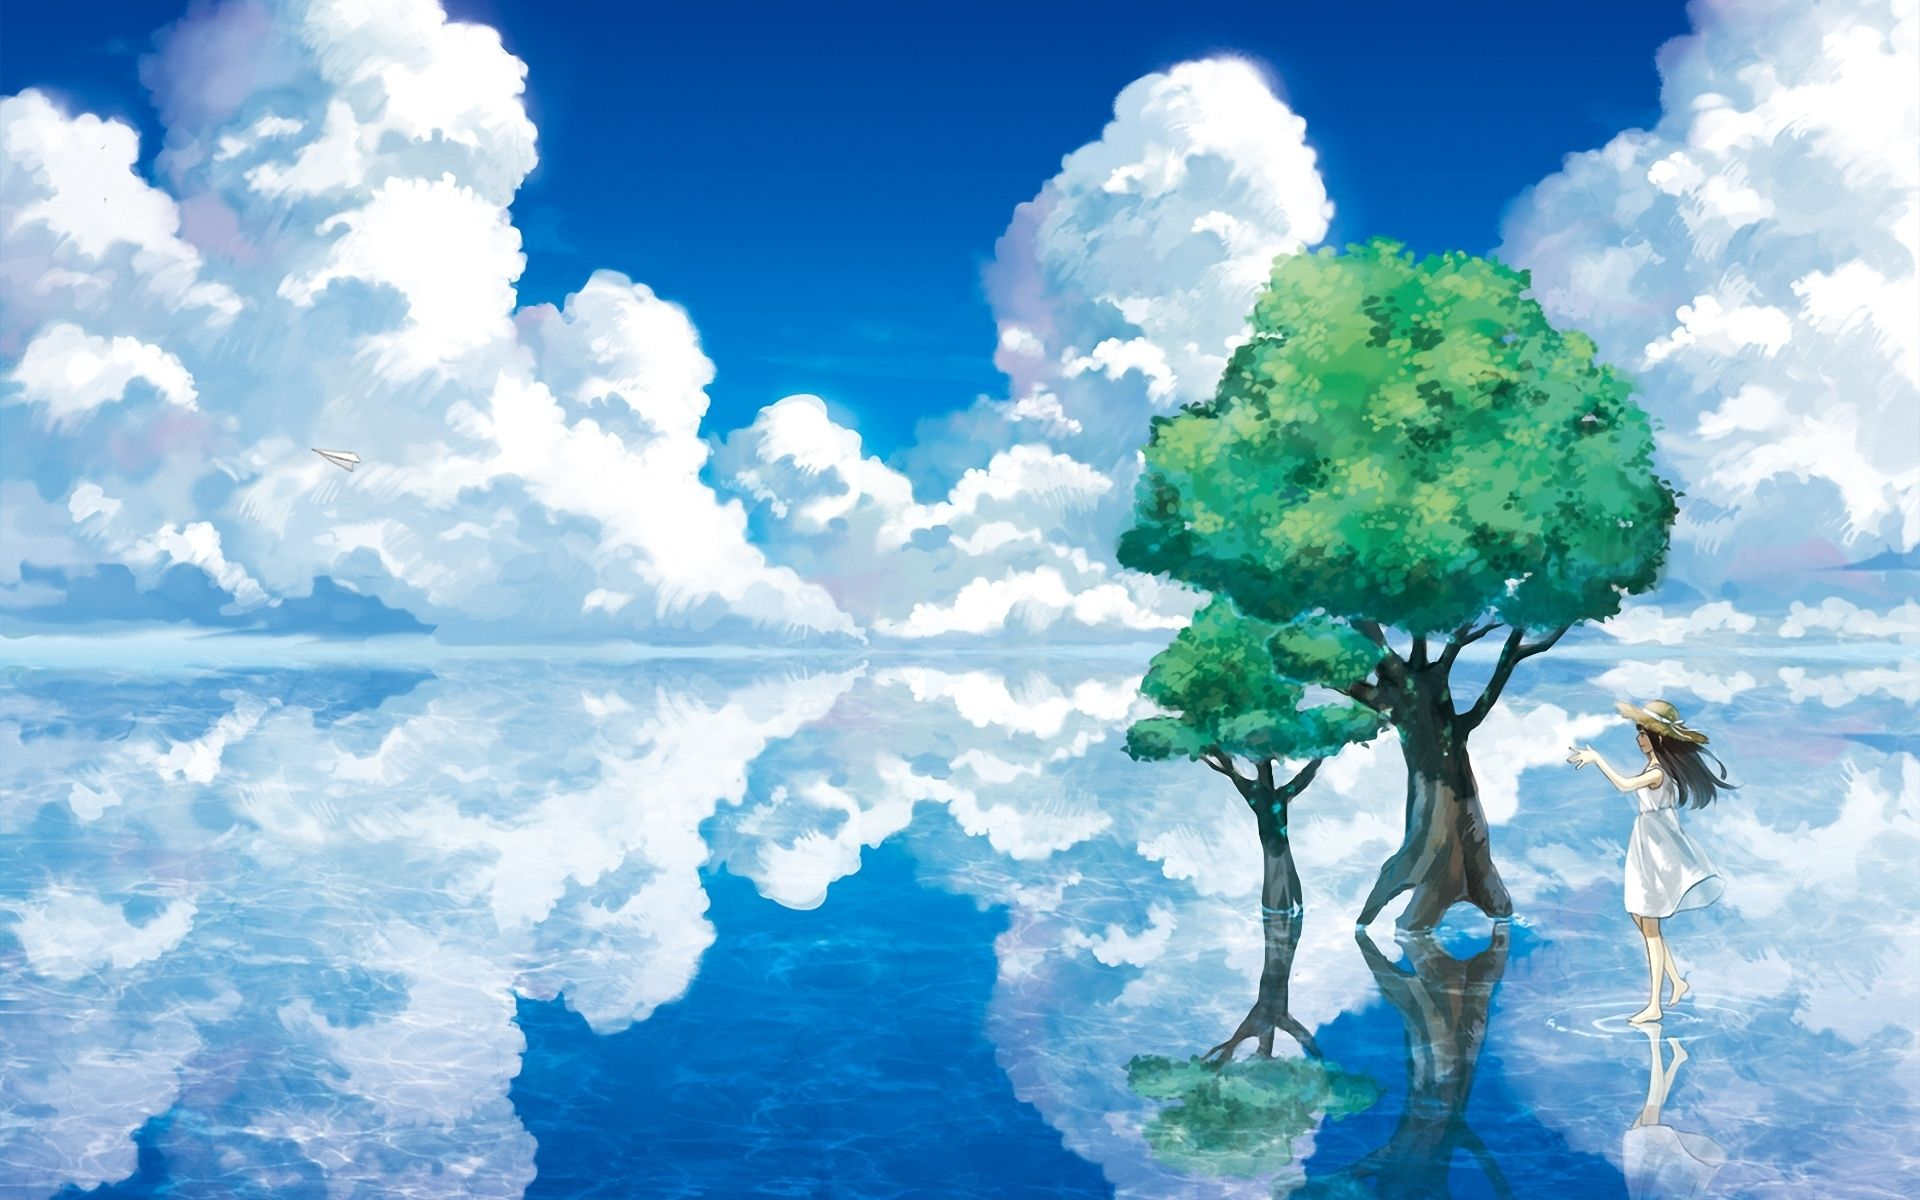 Anime Landscape Japanese By Heart 3 Anime Scenery Anime Art Anime